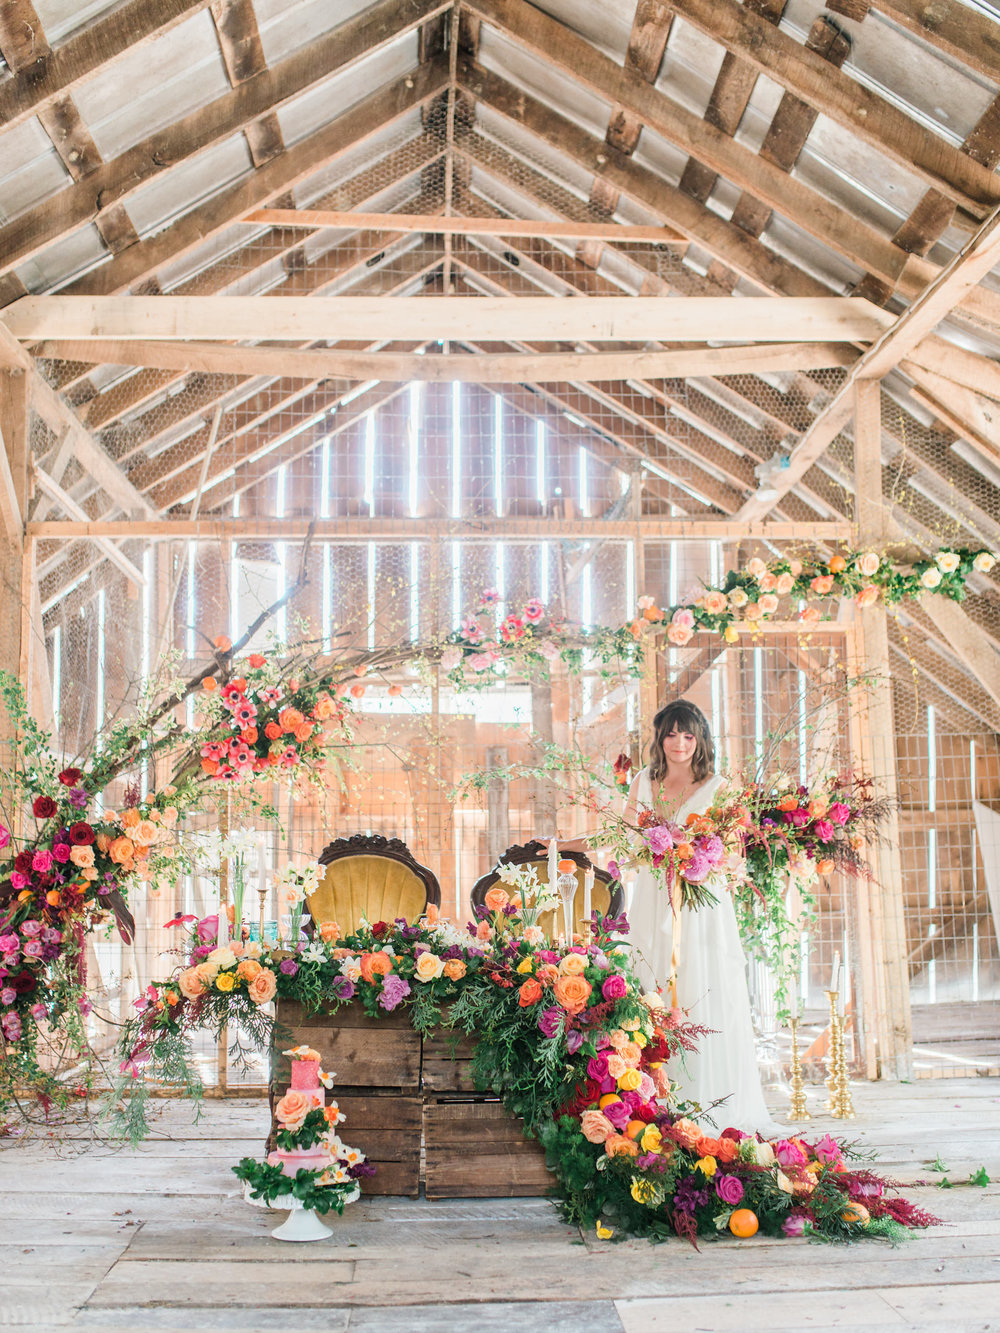 Created by TEXTURE Florals, Layers of Lovely, Wildflowers by Design, Faye & Renee, Cottage Flowers Design, Jig-Bee and Pamela Primrose / Photo: Delaney Dobson Photography